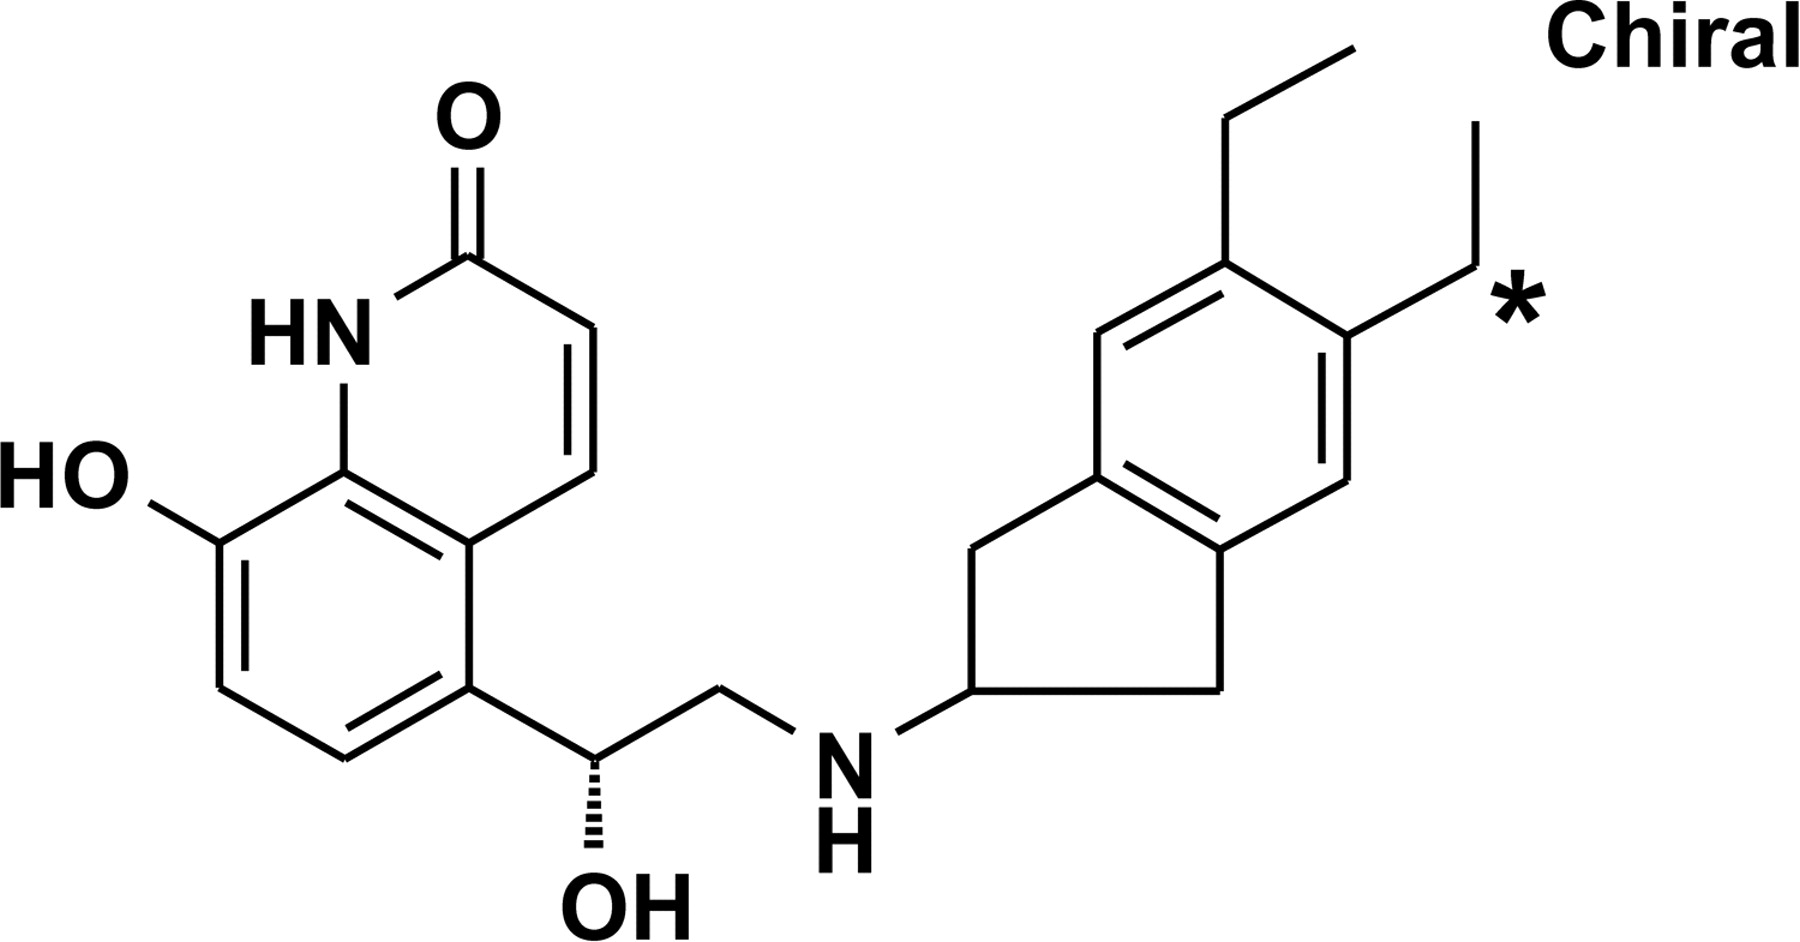 Metabolism and Pharmacokinetics of Indacaterol in Humans   Drug ...